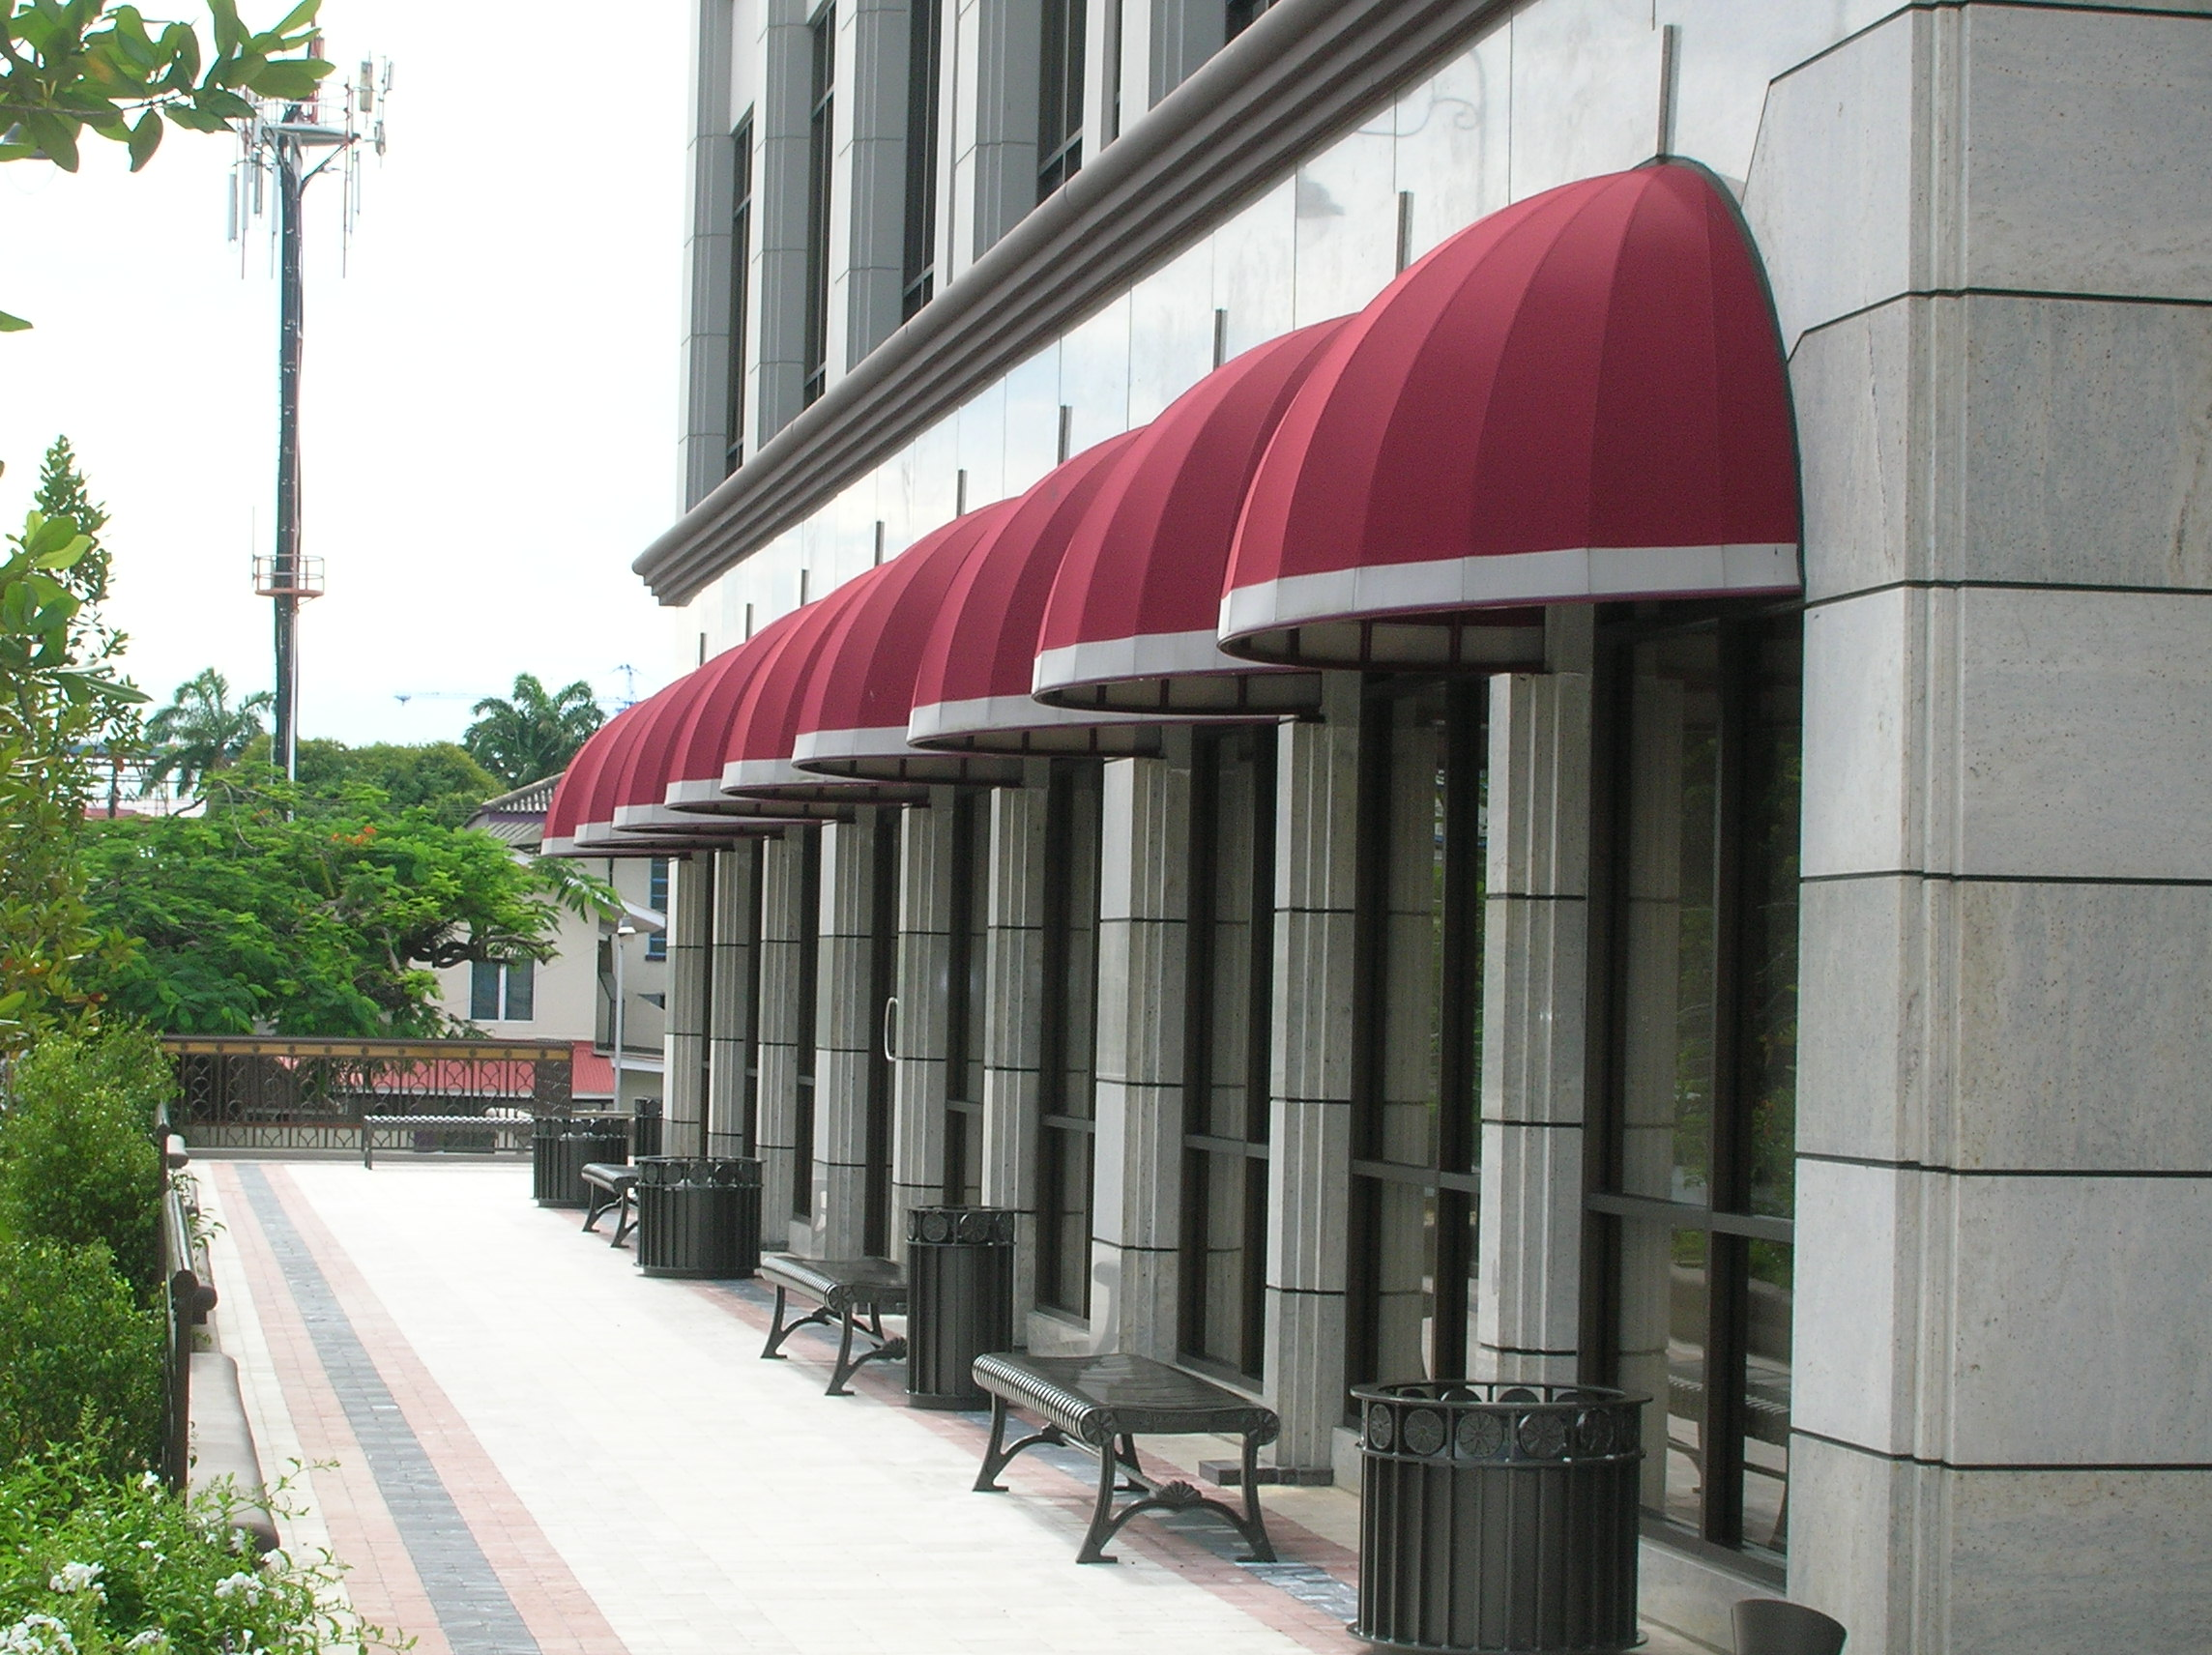 Dome Awning - Briar Place Trinidad & Fixed Awnings u0026 Canopies | Calypso Fabric Architecture